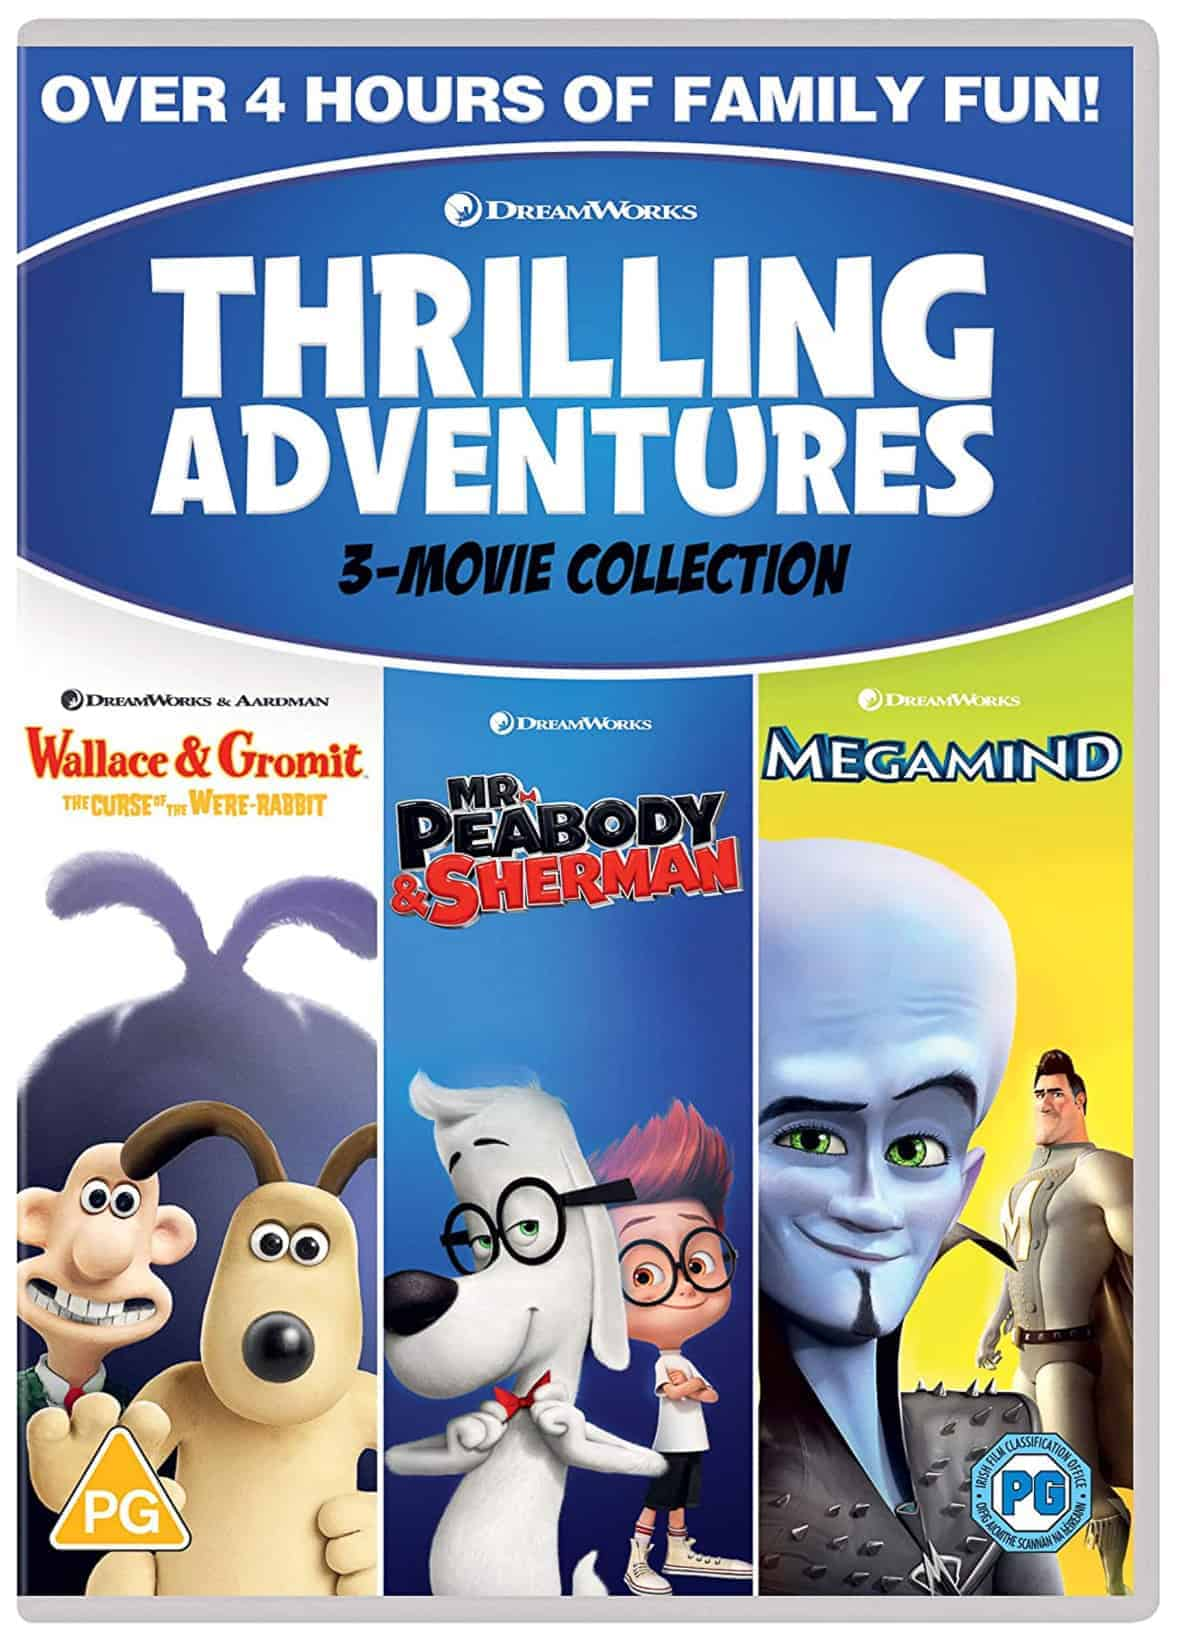 The Thrilling Adventures DVD Collection.